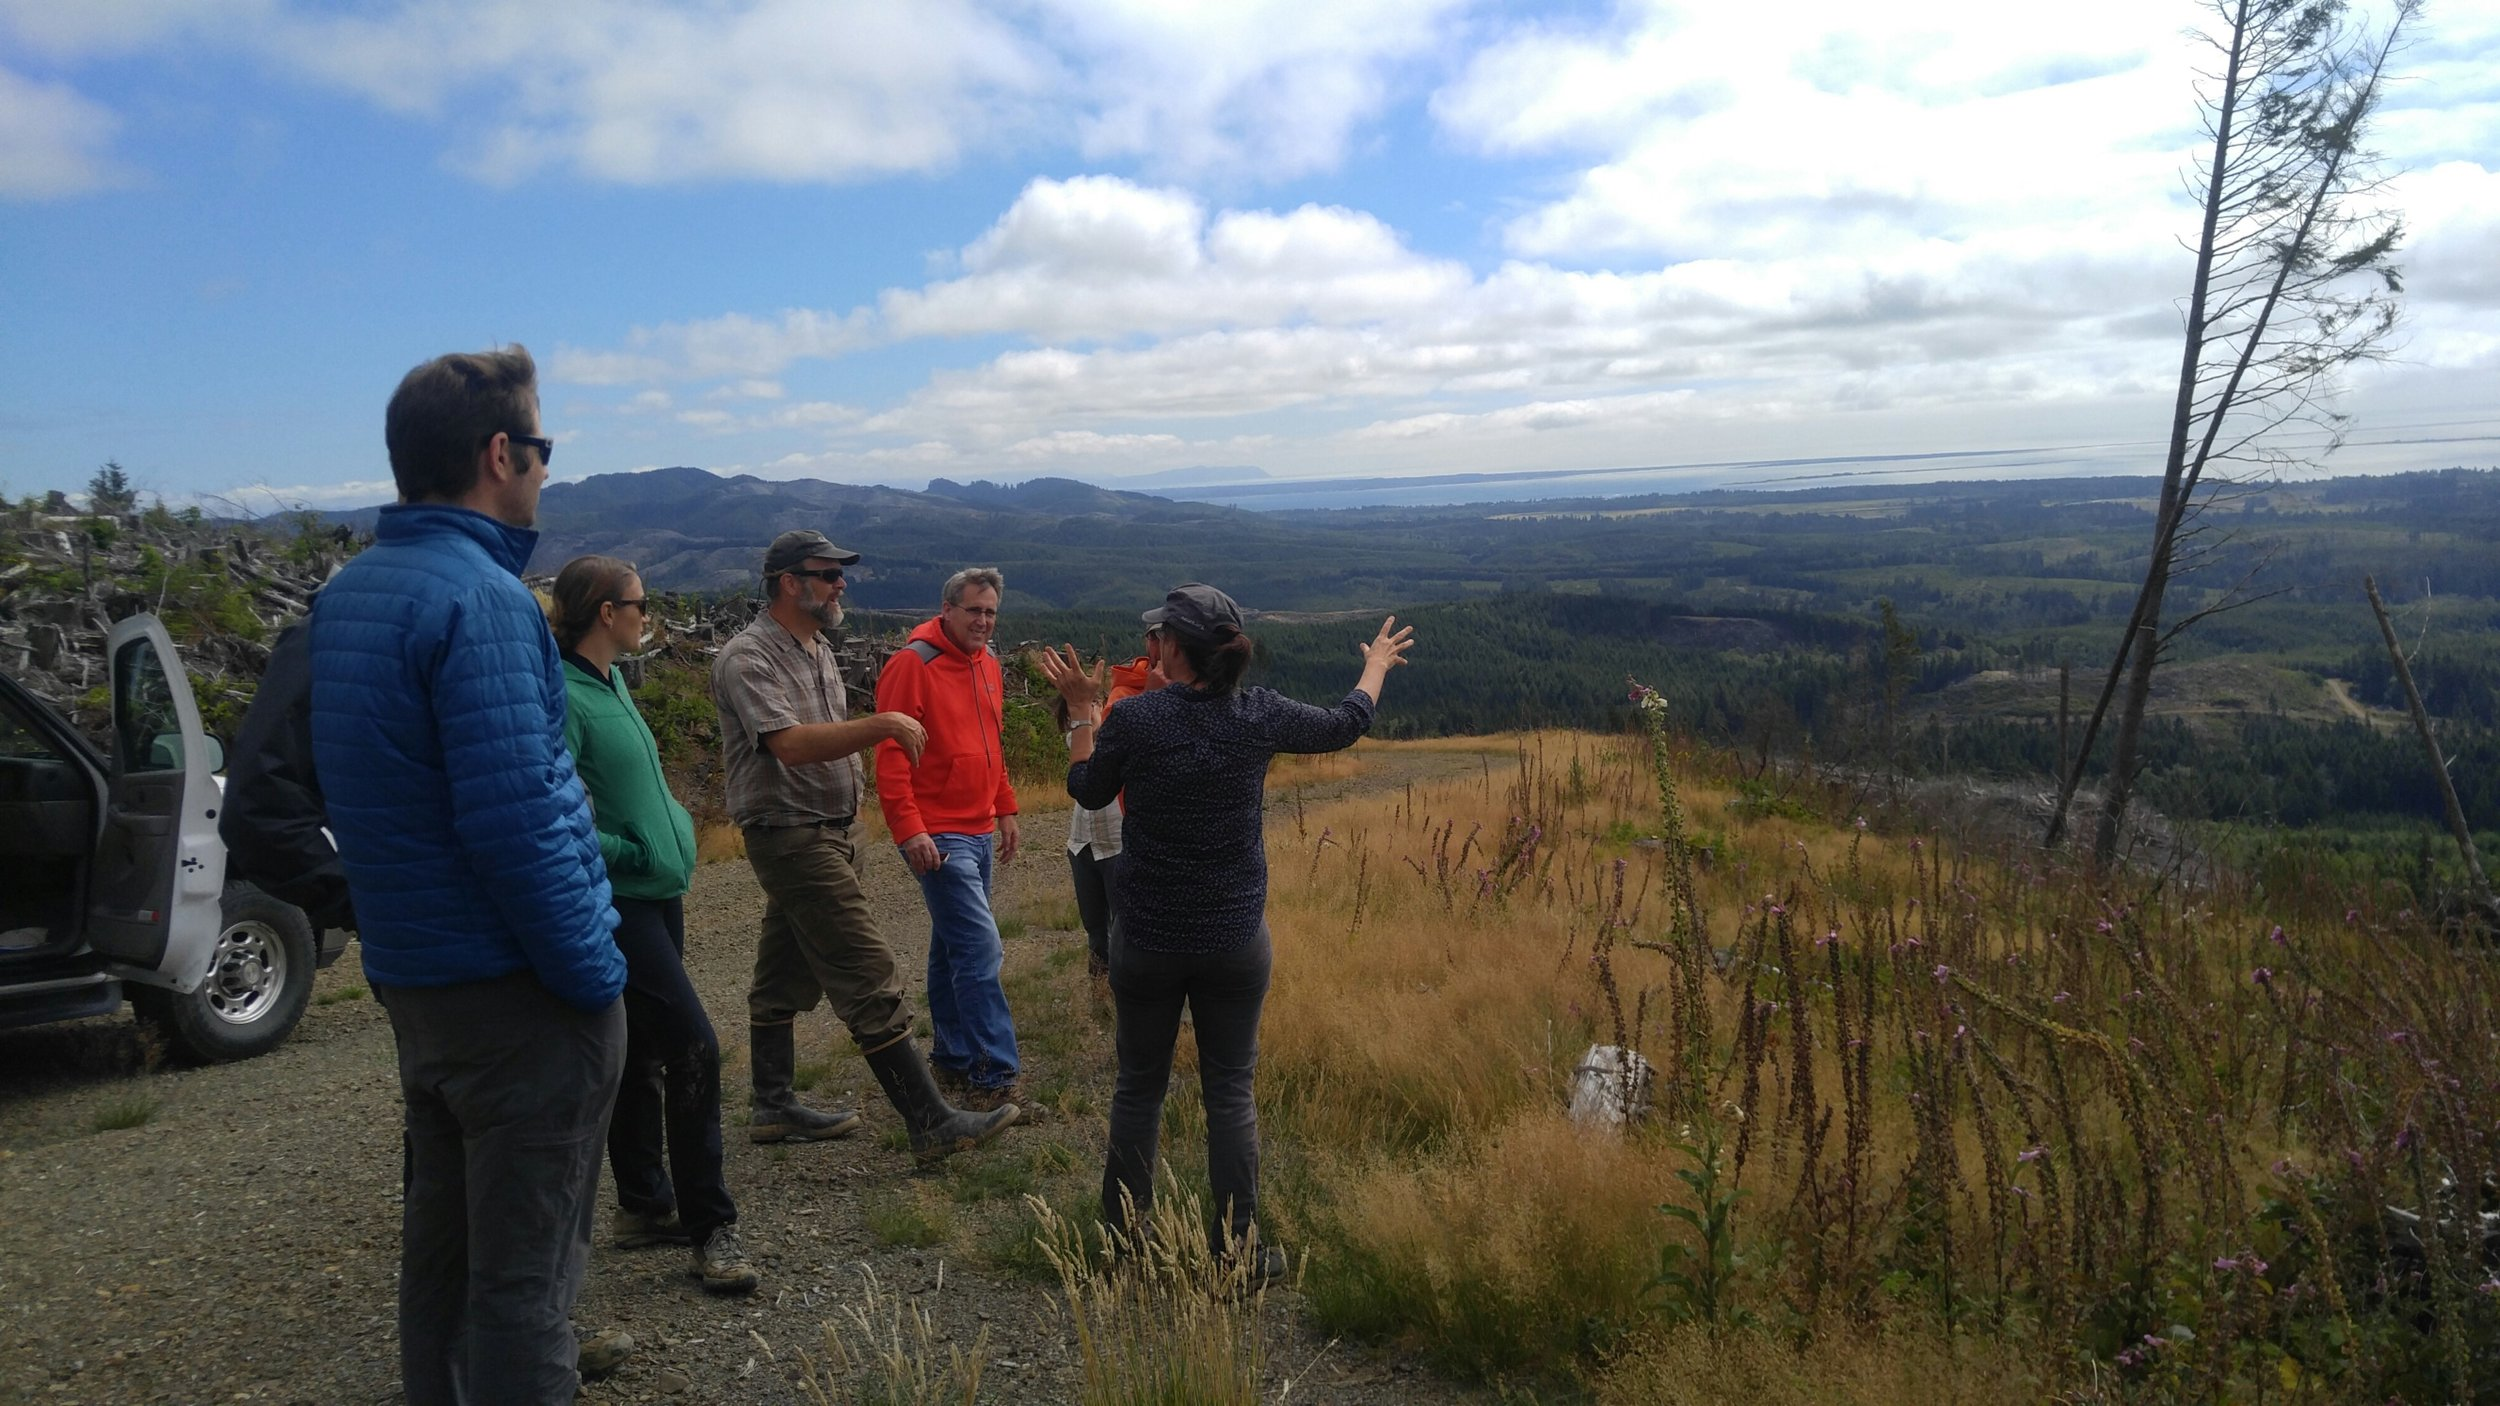 TNC's Federal Government Relations Director Cathy Baker and Tom Kollasch from Pacific County Conservation District talk with the group while overlooking the cooperatively managed lands and the Columbia River delta. Photo © Jessica Helsley